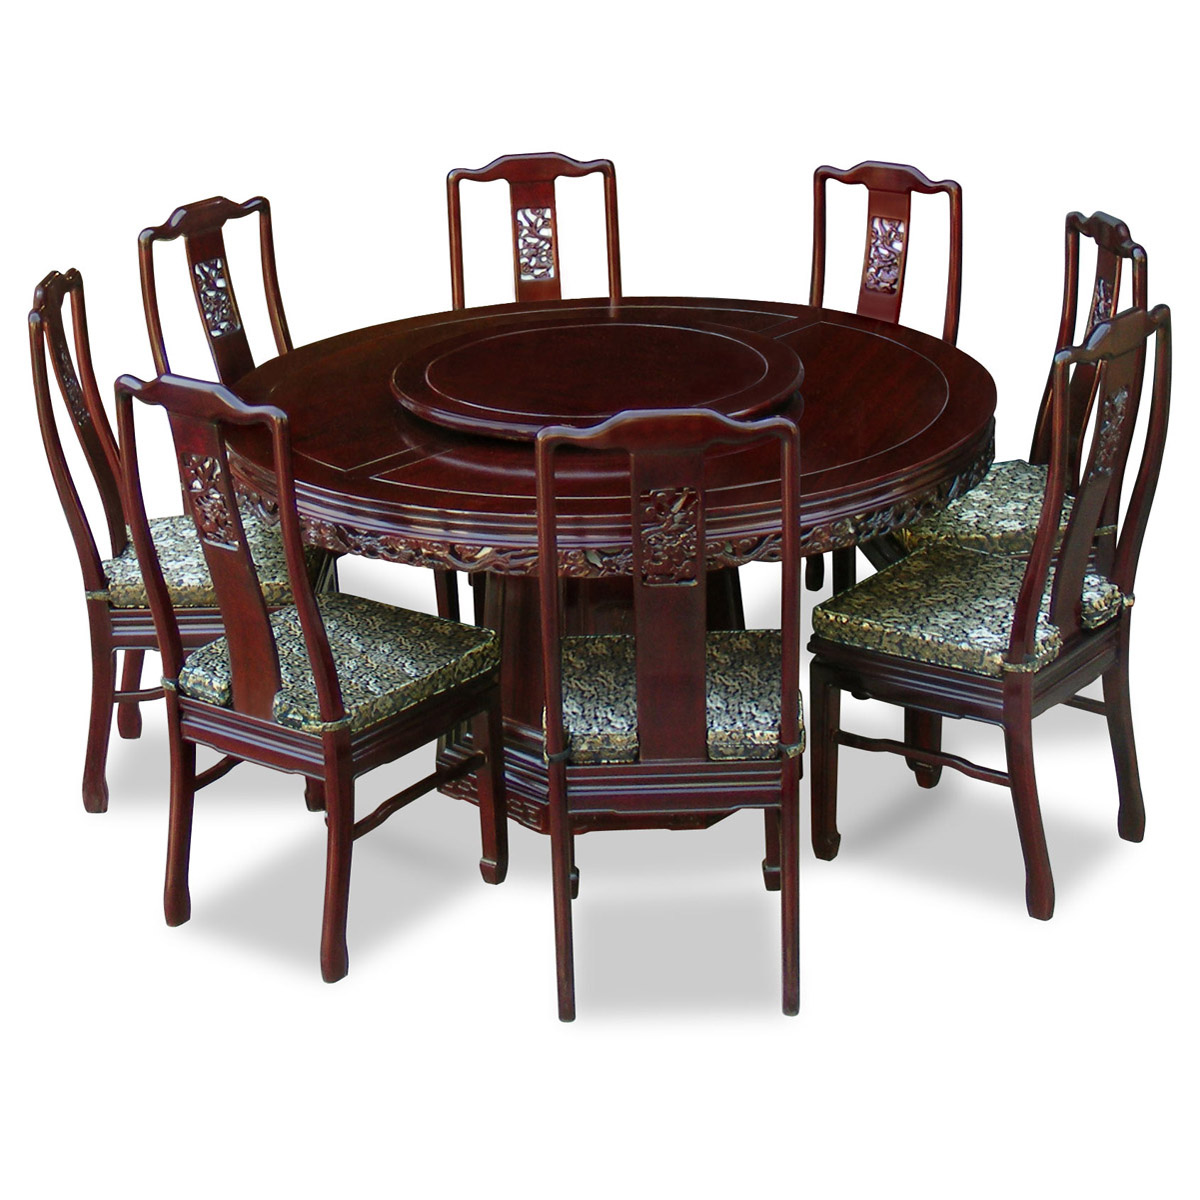 Perfect 8 person round dining table homesfeed for Dining table and chairs